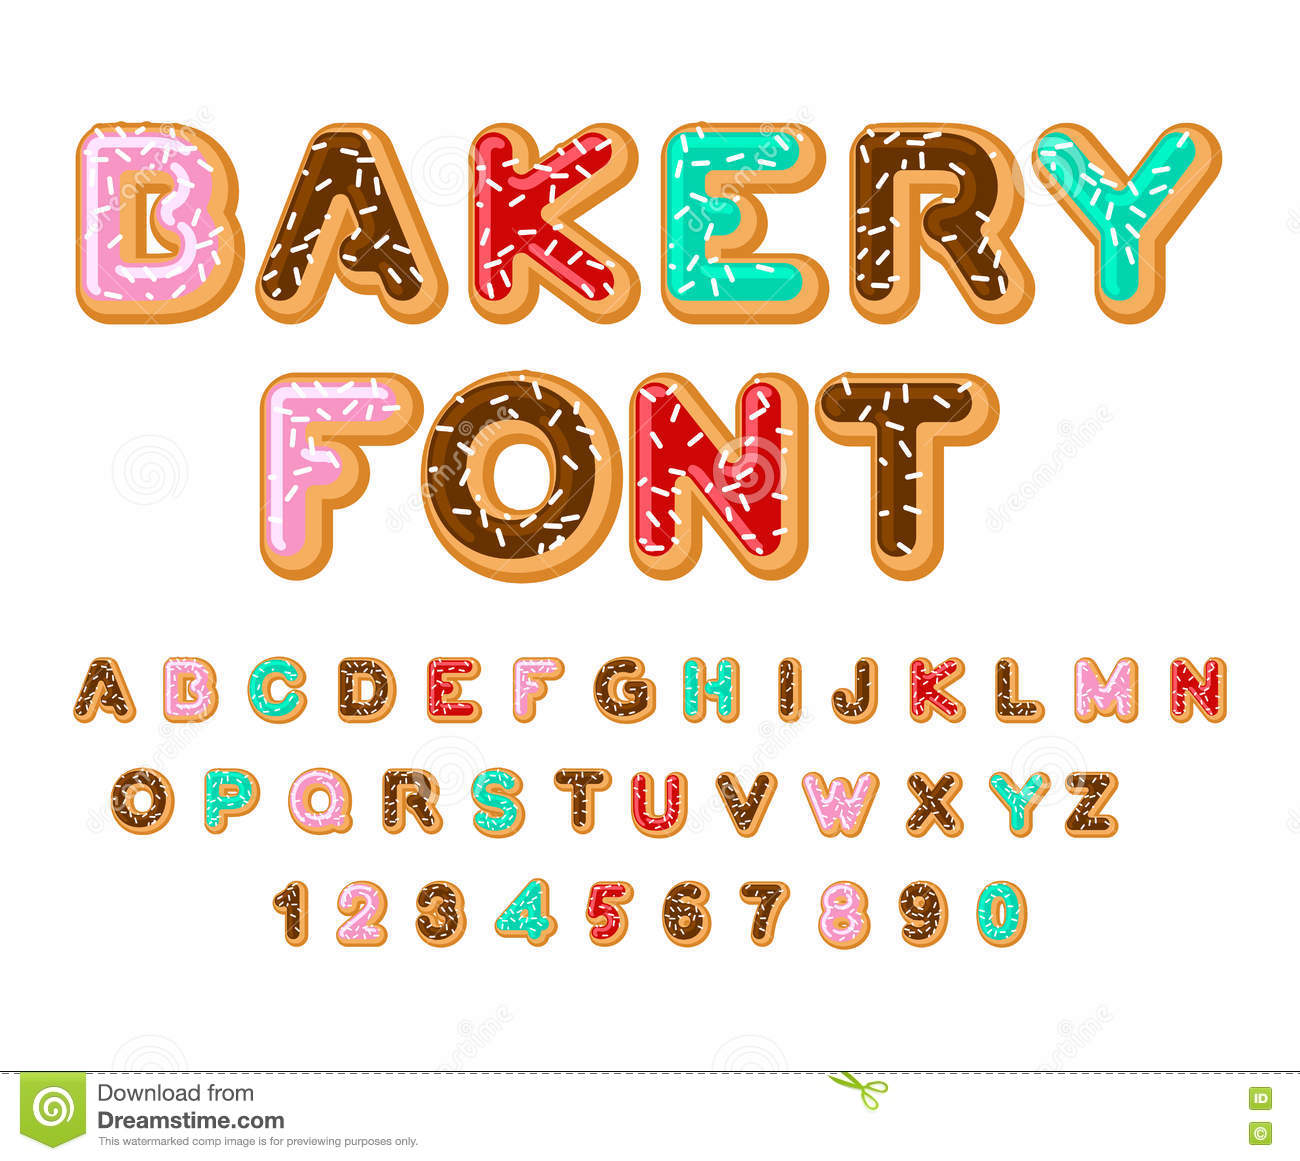 Abc baker clipart clipart library Bakery Font. Donut ABC. Baked In Oil Letters. Chocolate Icing An ... clipart library